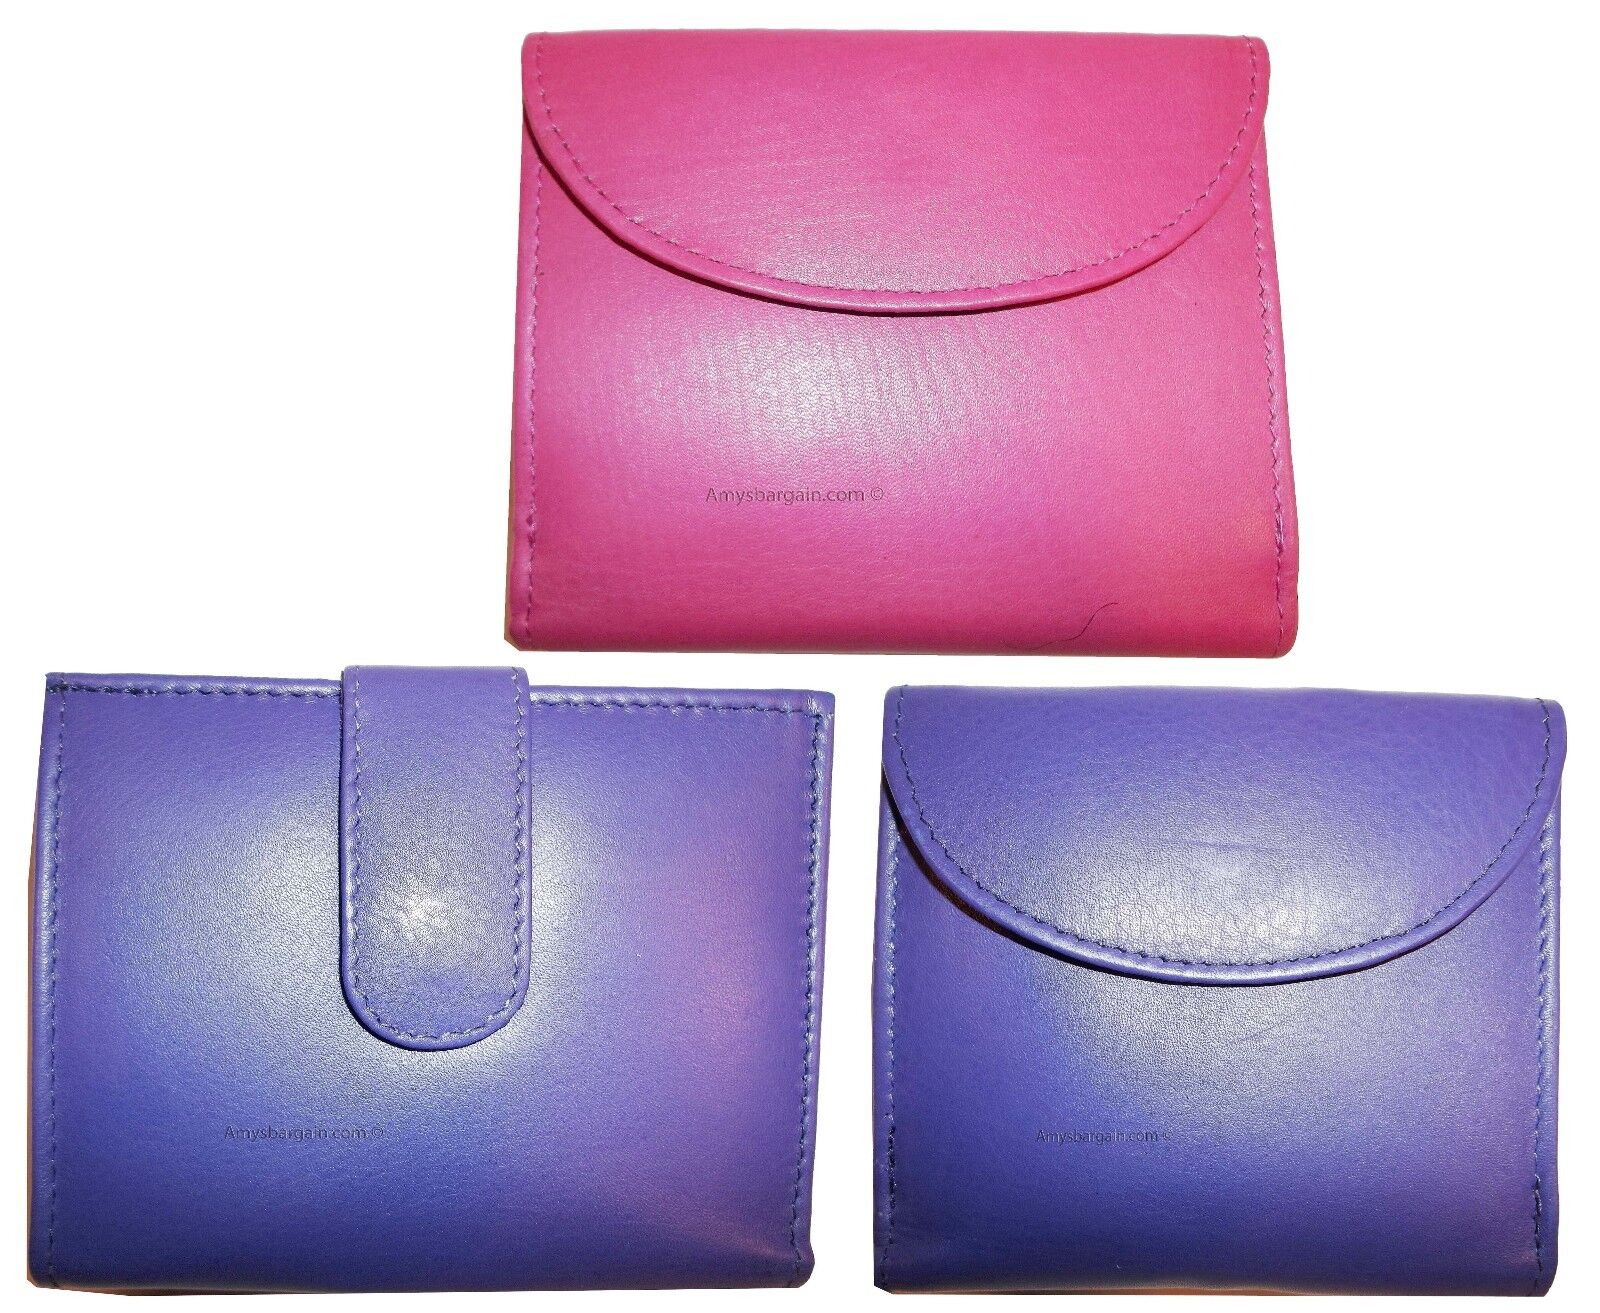 Lot of 3 New Woman's Leather Compact Wallet Credit Cards ID Bi-fold change purse